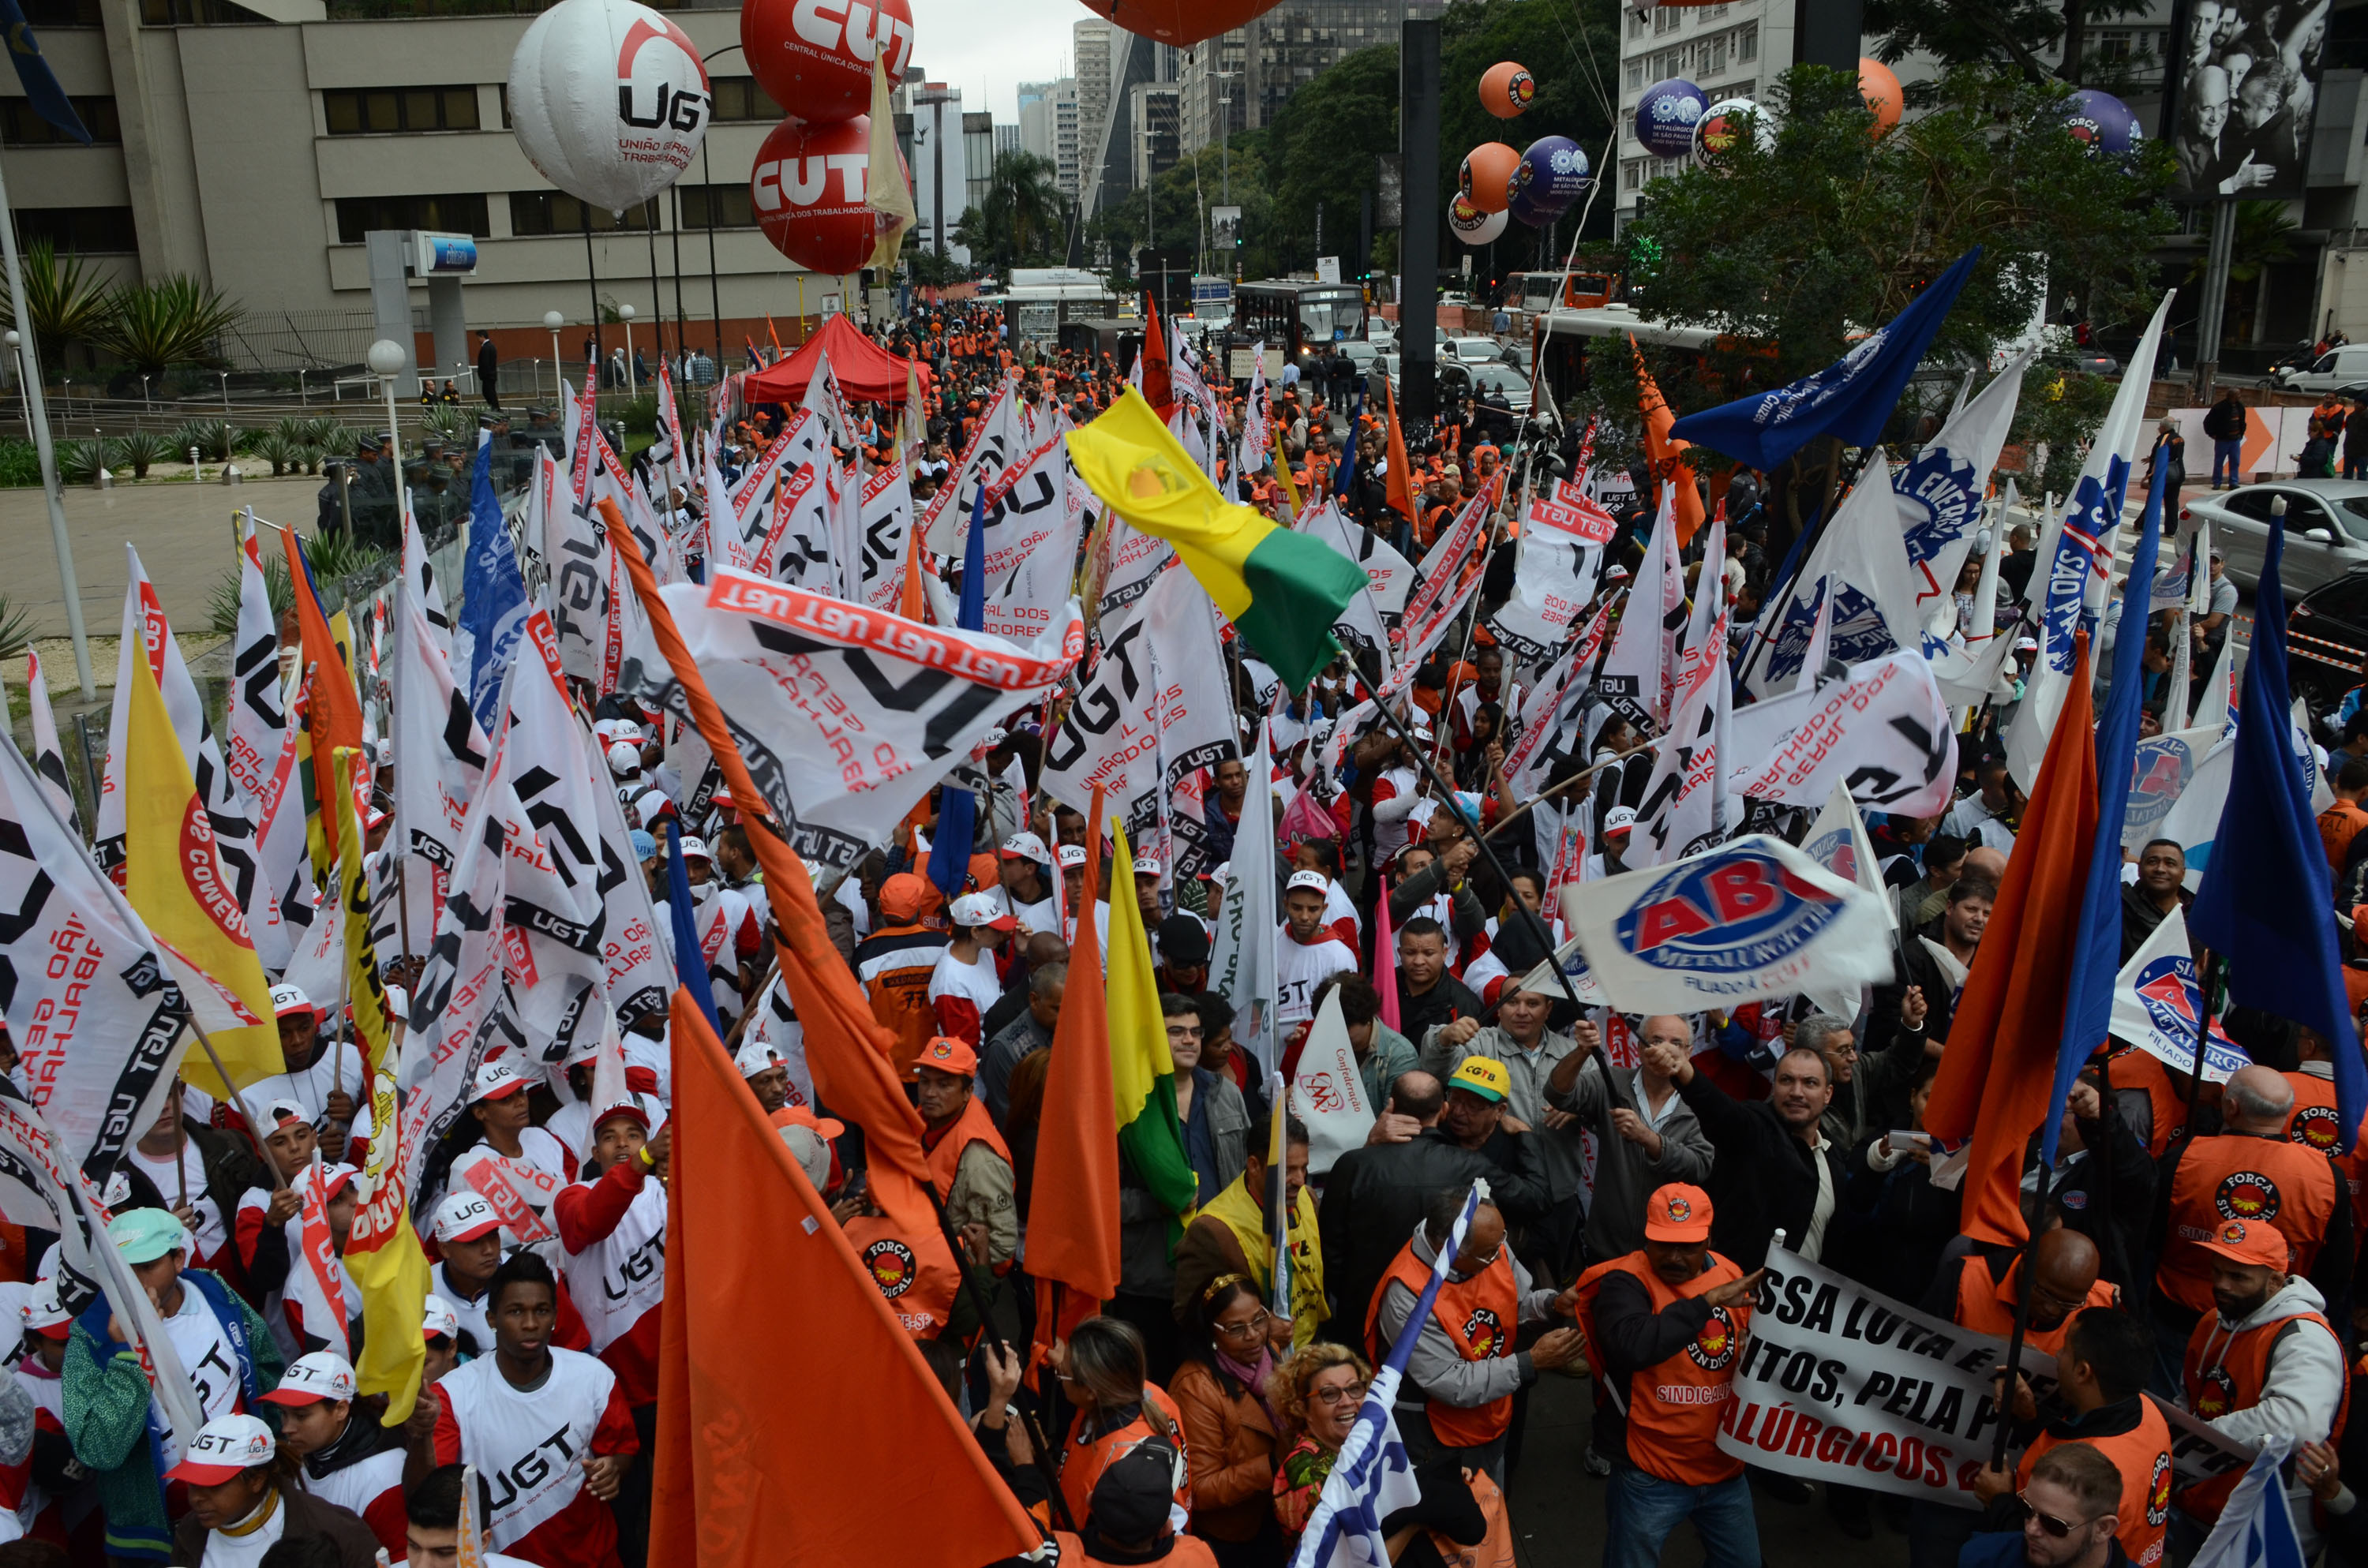 Protesters linked to trade unions held a protest on Paulista Avenue, west of Sao Paulo, southeastern Brazil, against unemployment and higher interest rates on June 2, 2015. According to the press office of the Military Police, 400 people participate in the demonstration. Photo: J. DURAN MACHFEE/ESTADAO CONTEUDO (Agencia Estado via AP Images)